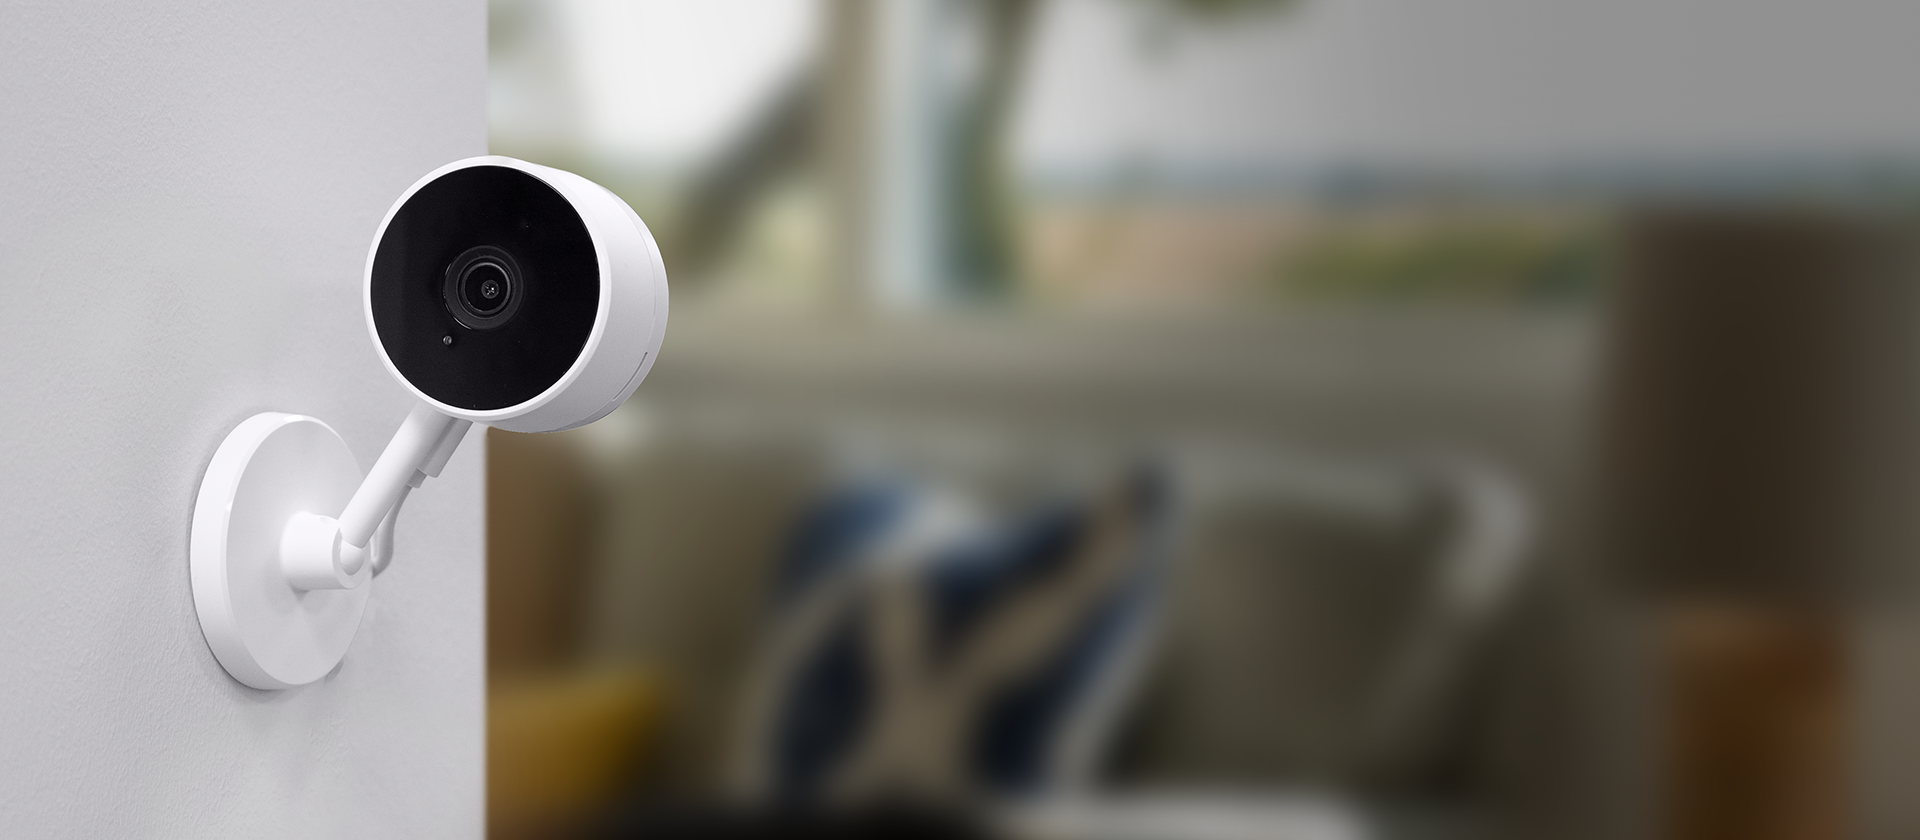 Smart motion detection, automatic image capture and alarm functions